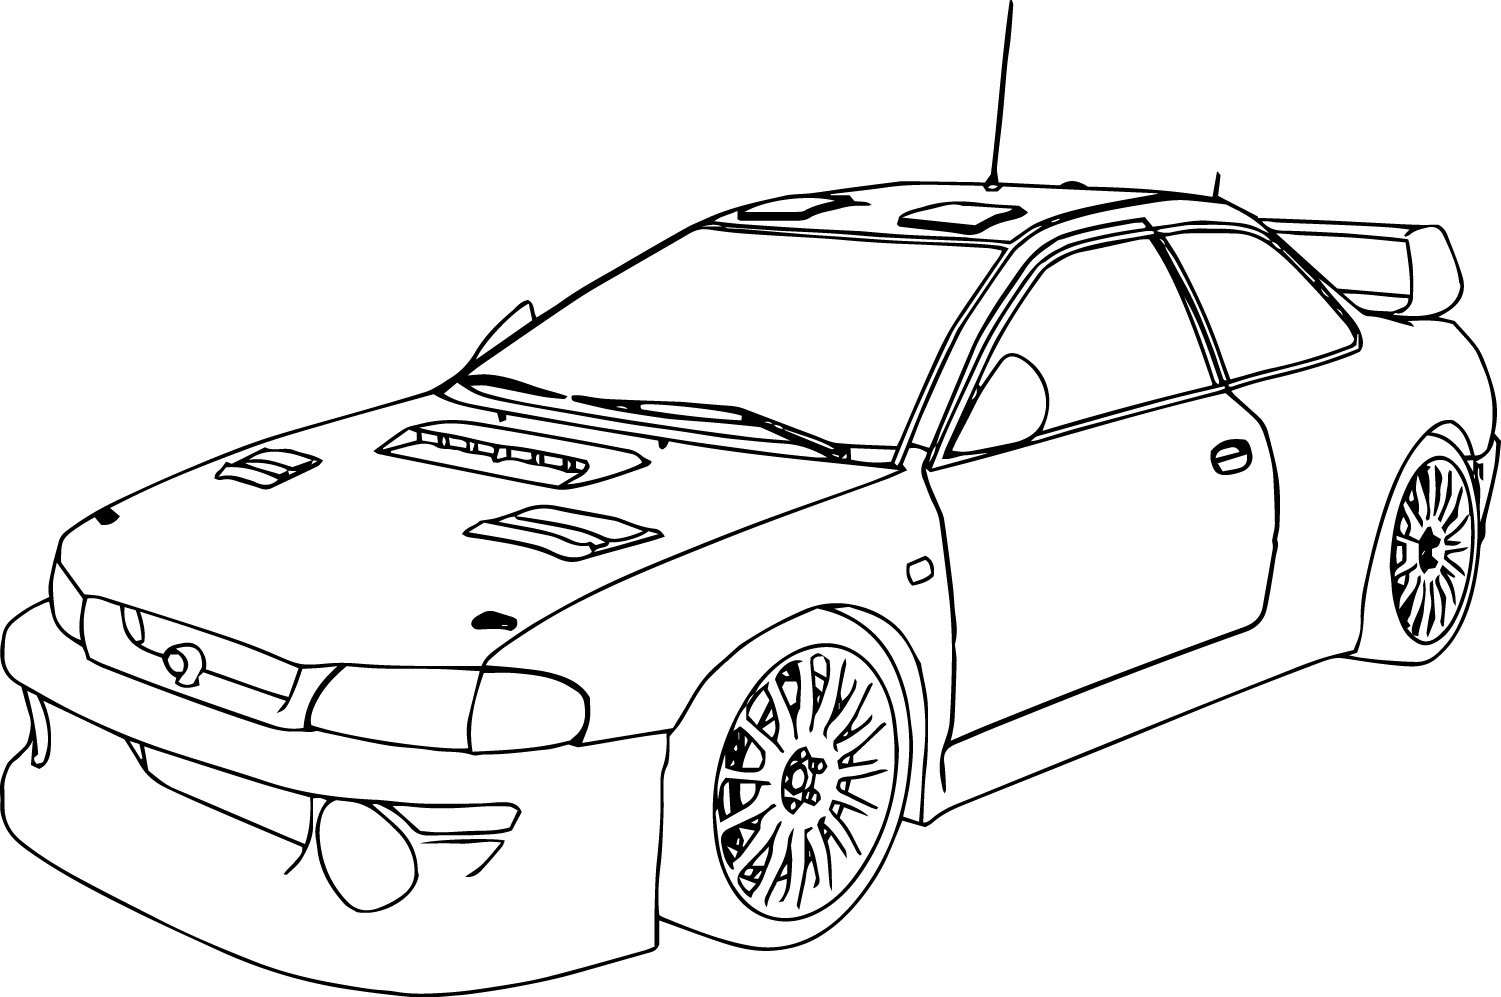 1501x997 Drag Racing Cars Coloring Pages Muscle Car Coloring Pages